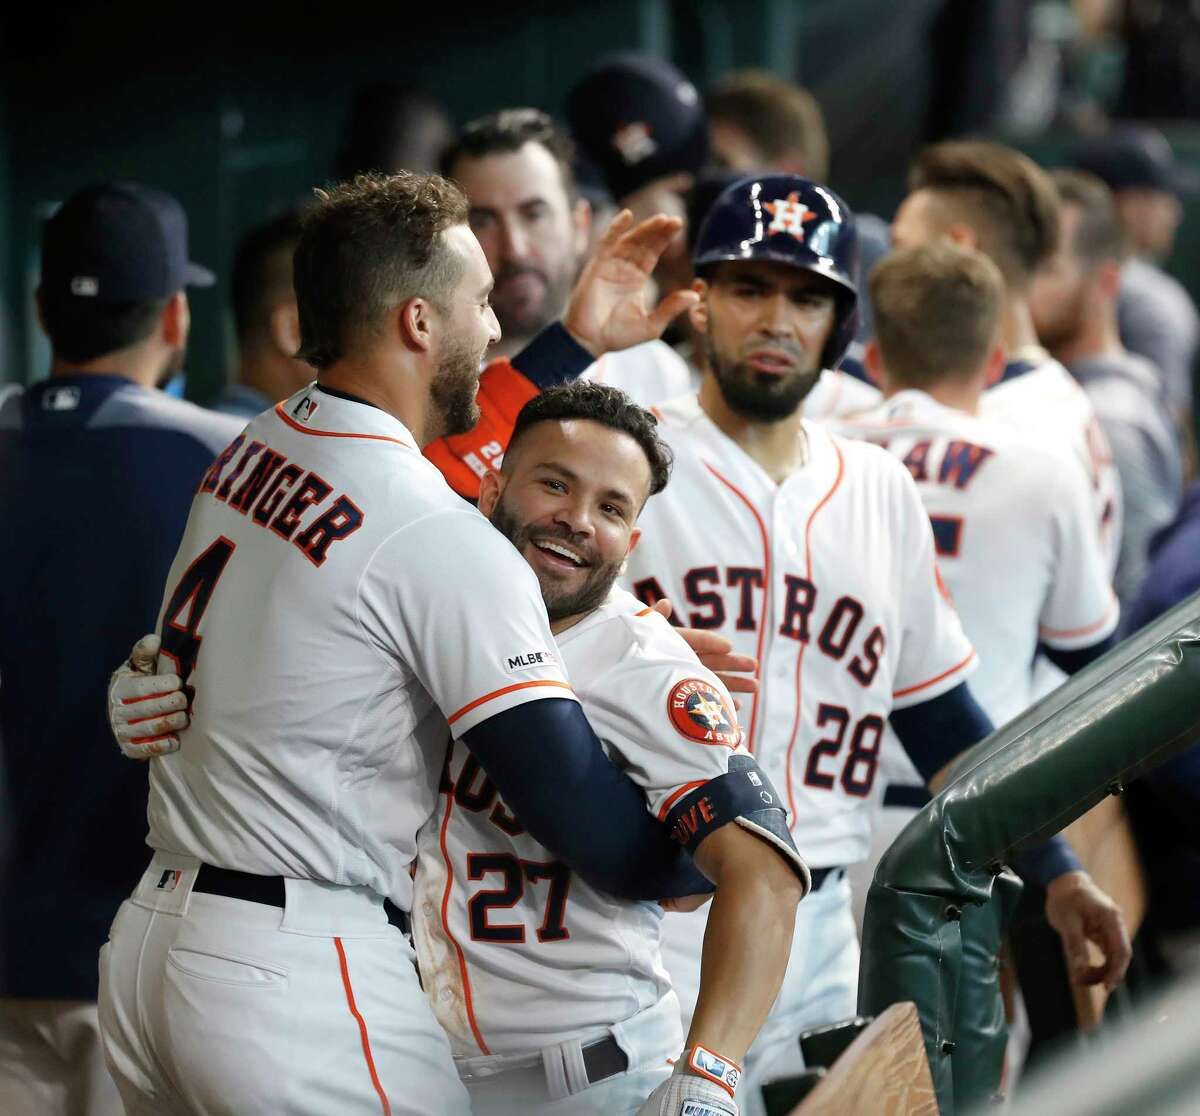 Houston Astros Jose Altuve (27) celebrates his two-run home run with George Springer (4) during the fifth inning of an MLB baseball game at Minute Maid Park, Wednesday, July 24, 2019.